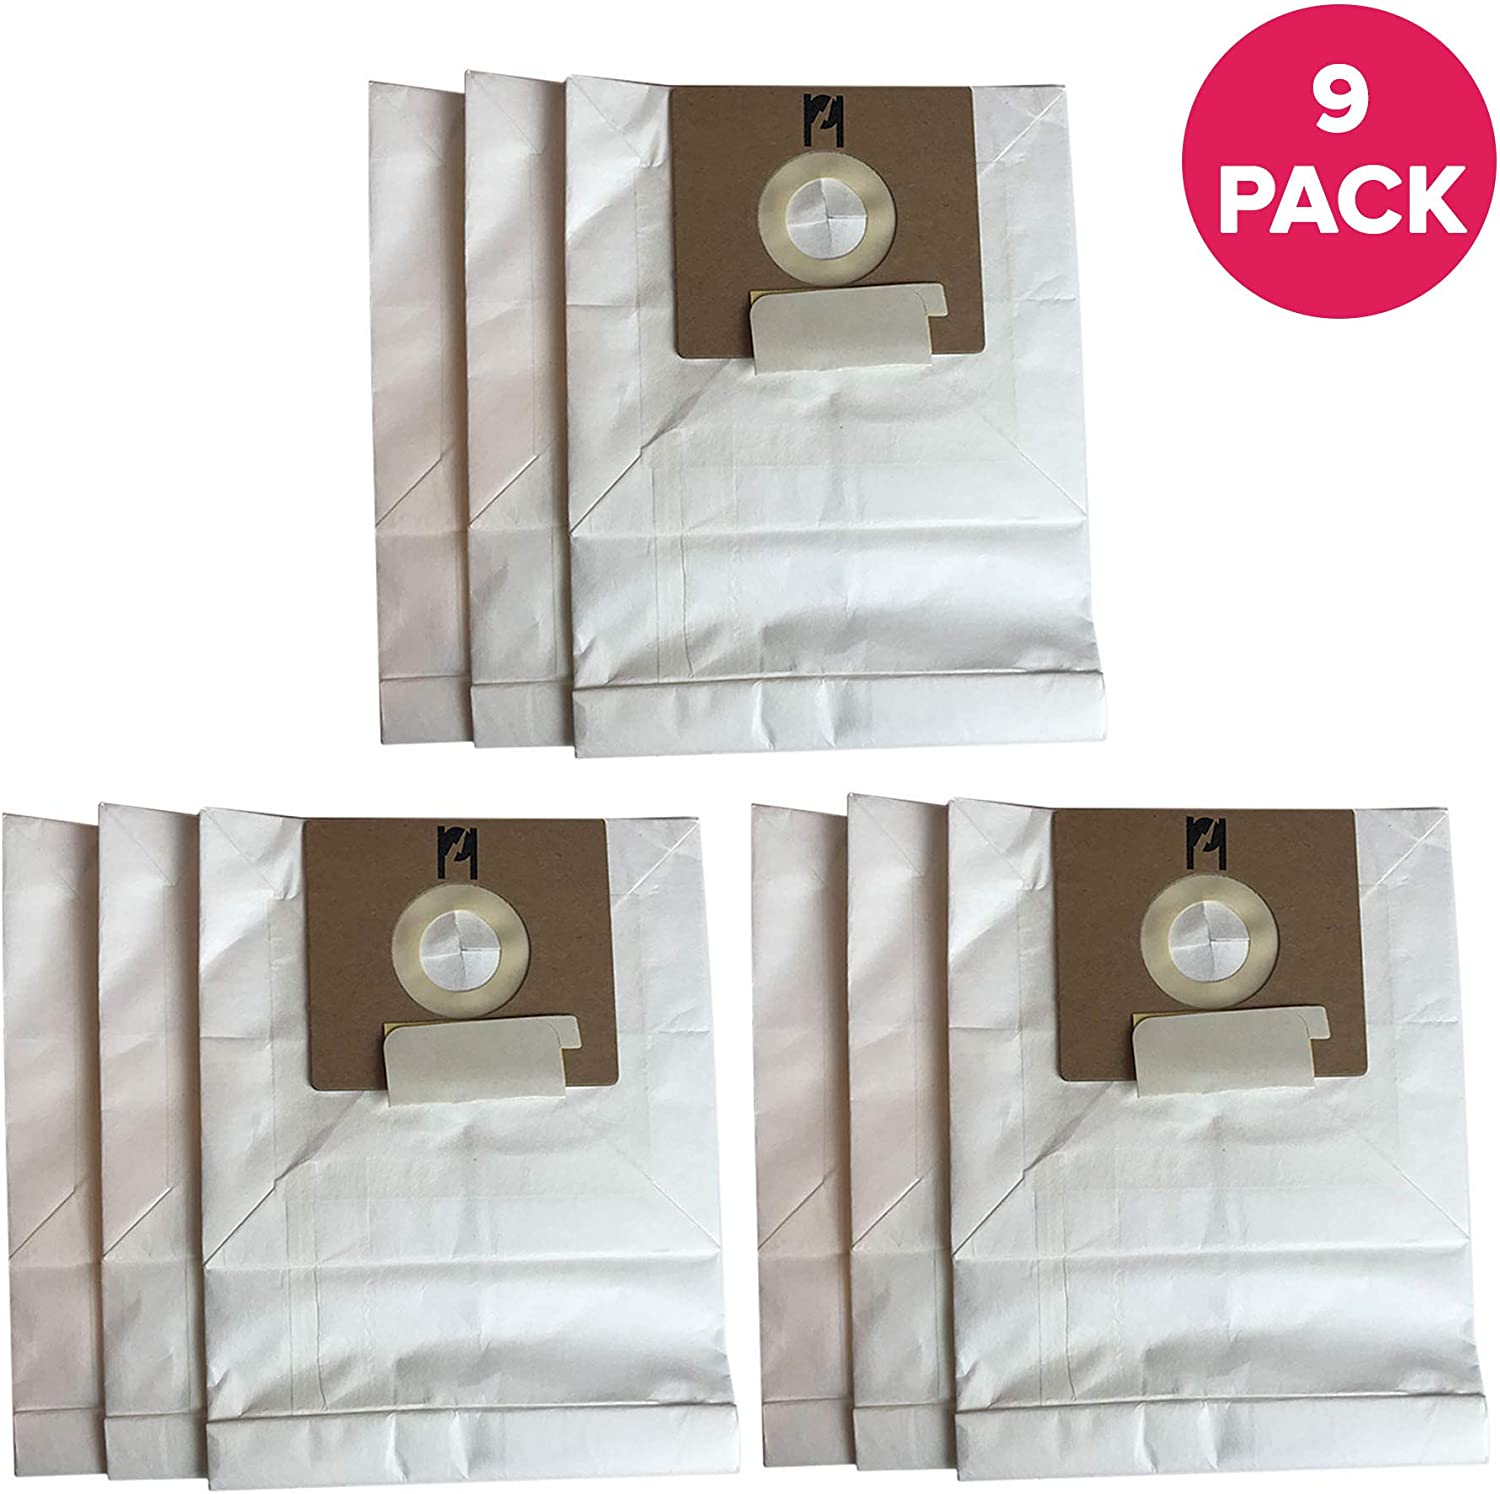 Crucial Vacuum Replacement Type B Cloth Vac Bags Part # 85003, 24196, 634875 115.2496210 - Compatible with Kenmore Bag and Oreck Canister Vacuums - Compact, Disposable Style for Vacuums (9 Pack)